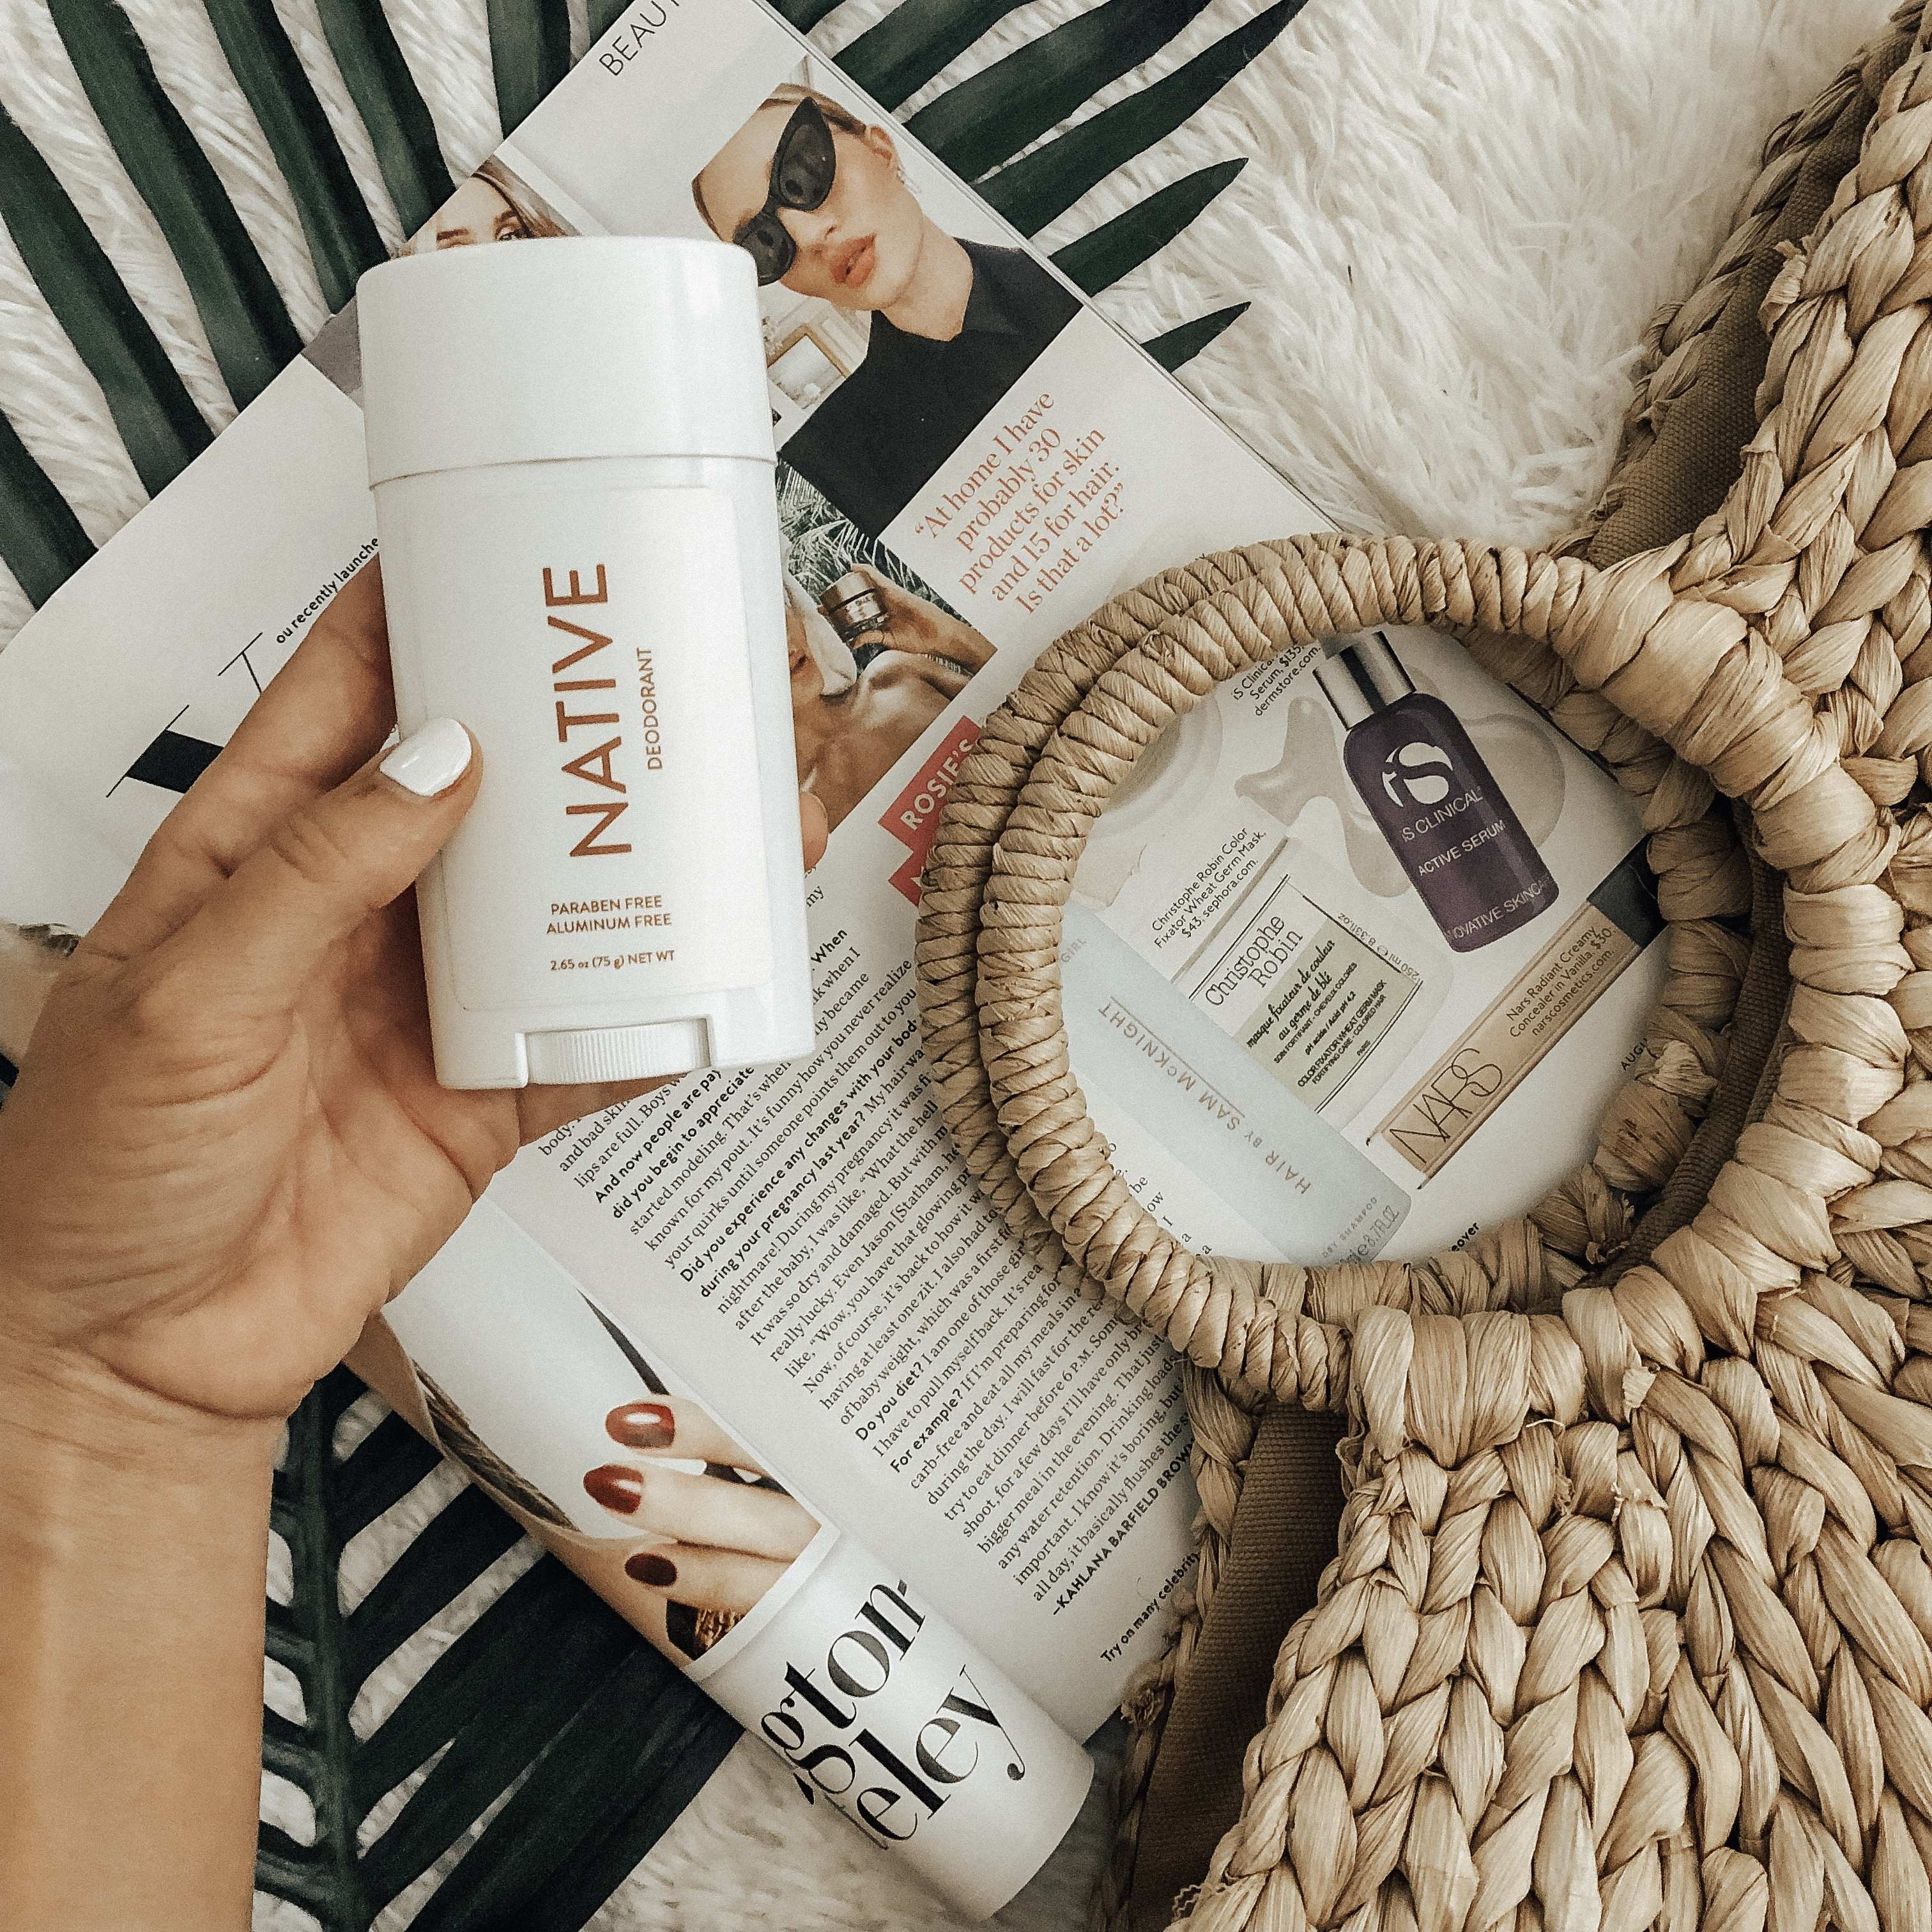 FINDING A NATURAL DEODORANT THAT ACTUALLY WORKS- Jaclyn De Leon Style + ALL NATURAL BEAUTY + BEAUTY BLOGGER + MUST HAVE PRODUCTS + BEAUTY REVIEW + SWAY UNDERARM DETOX + SCHMIDT'S + NATIVE + PARABEN FREE + ALUMINUM FREE + HEALTHY DEODORANT